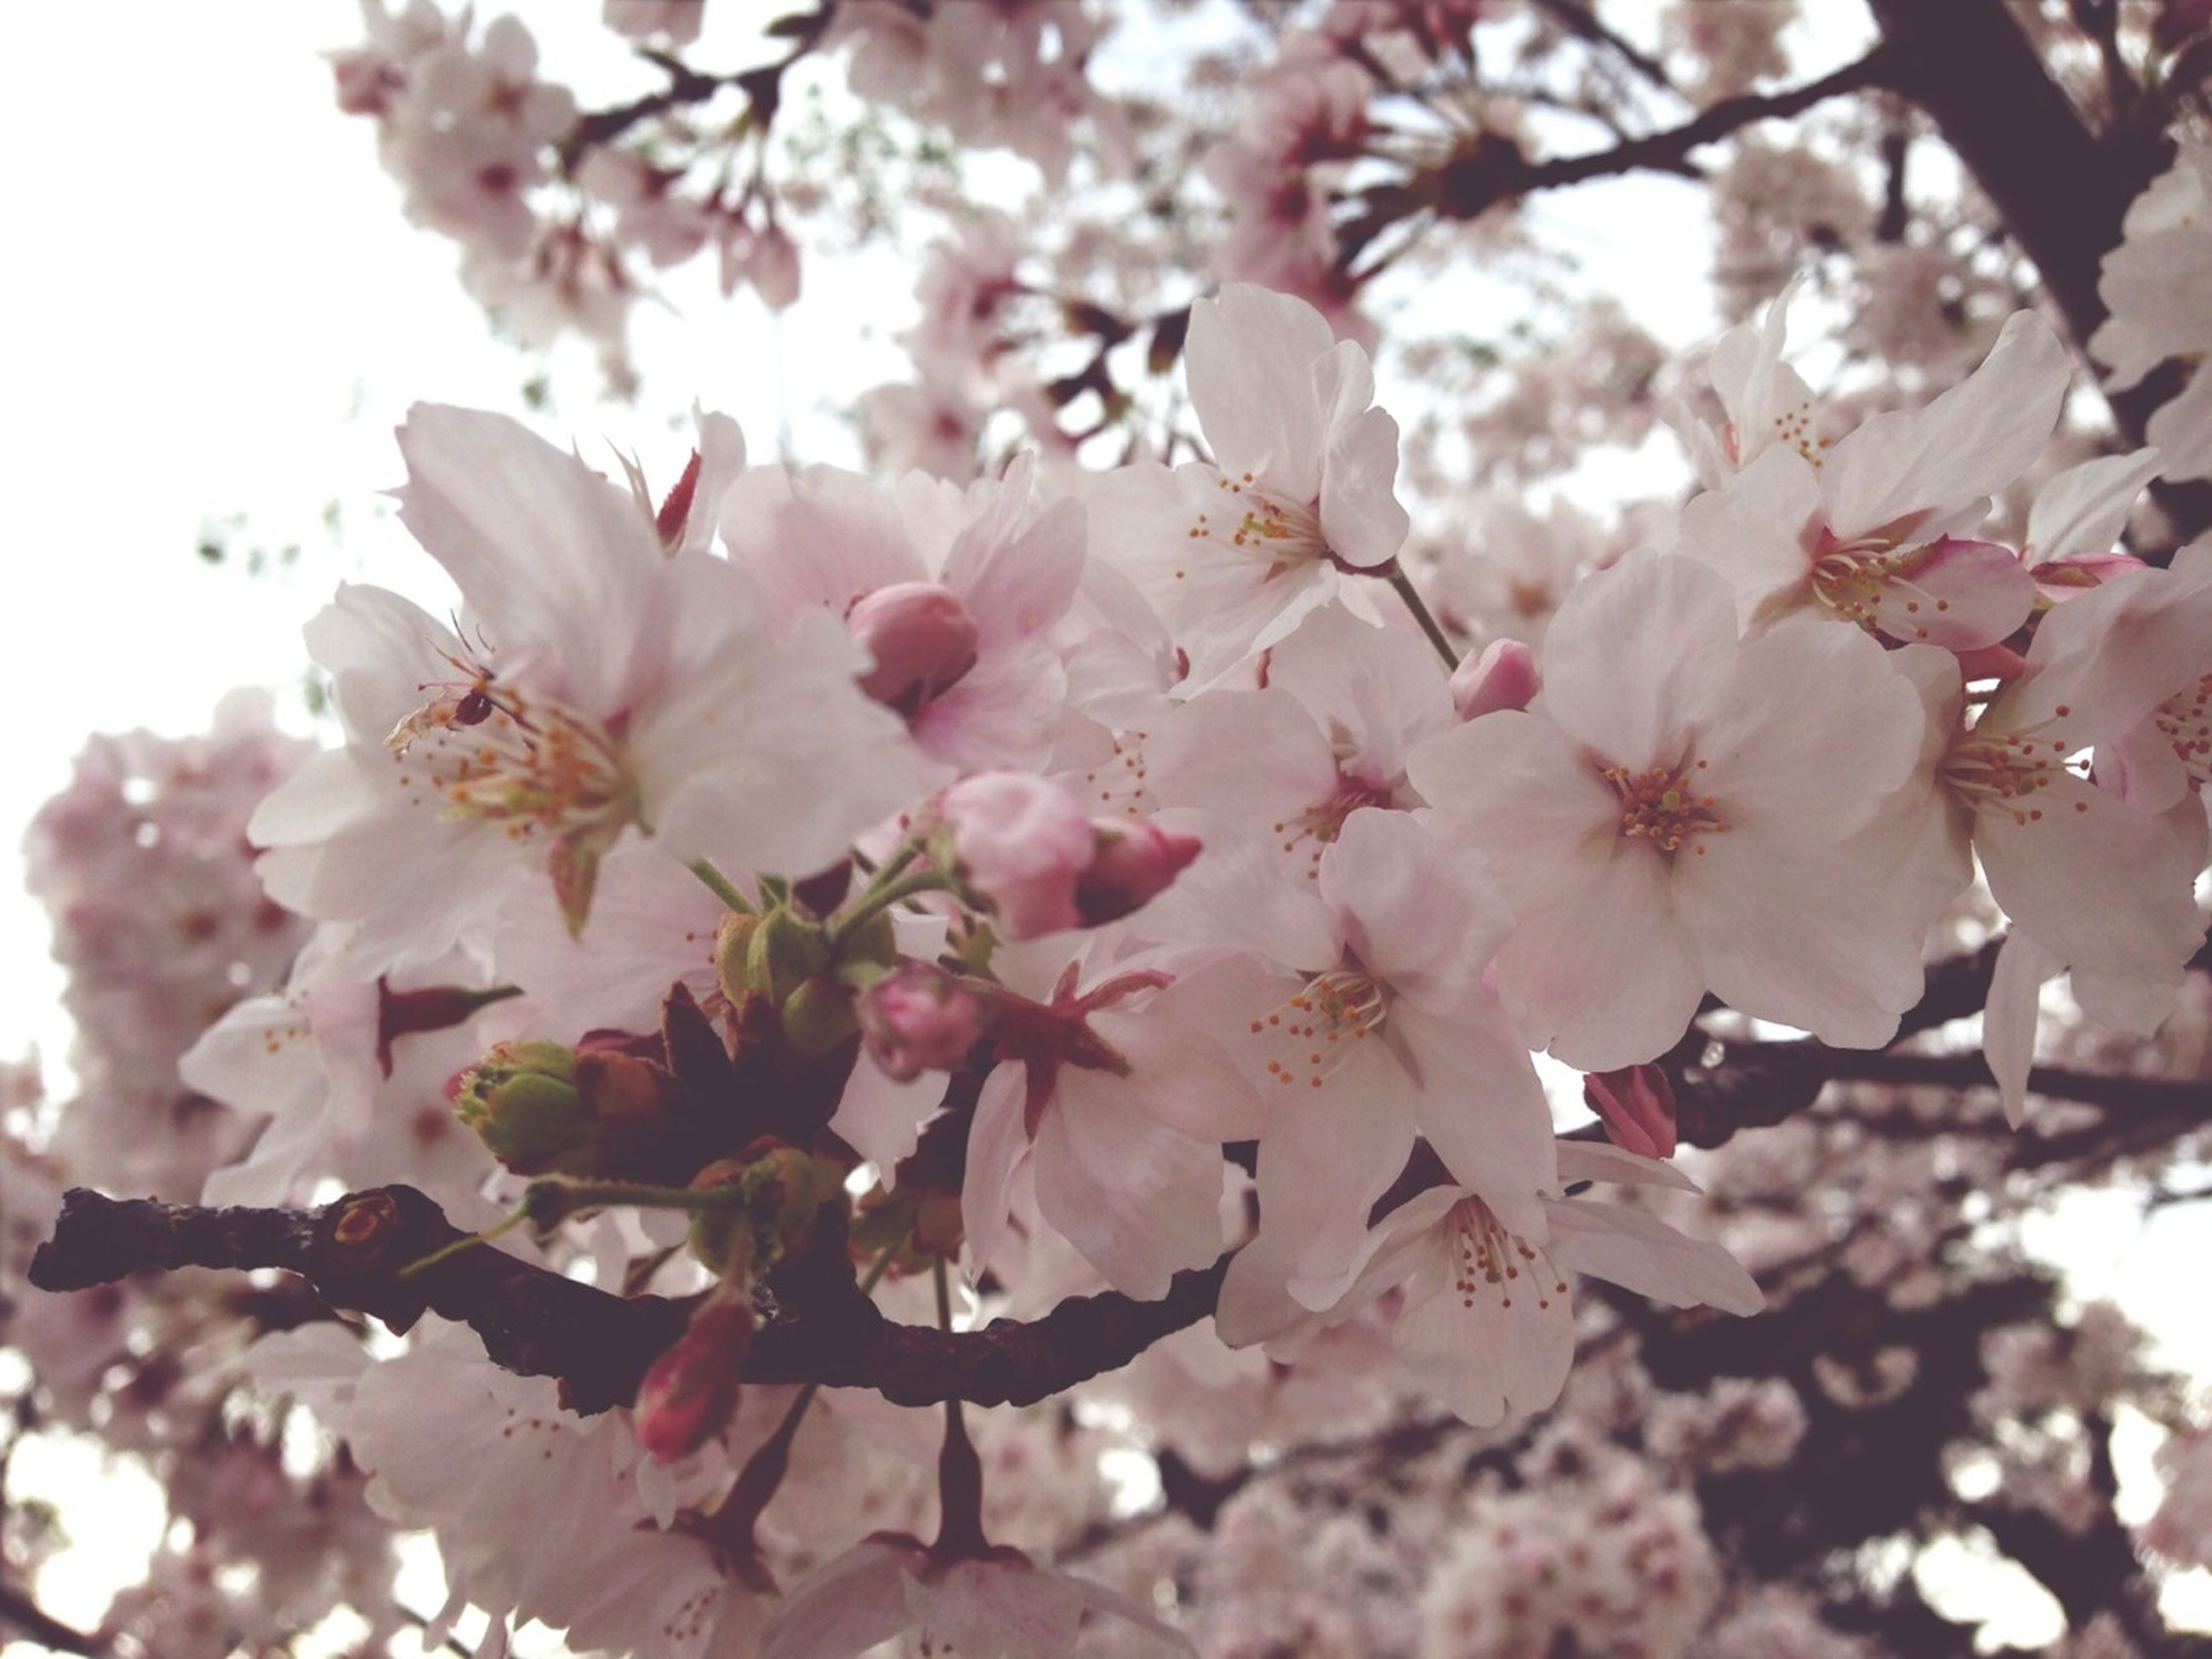 flower, freshness, branch, fragility, cherry blossom, tree, growth, beauty in nature, pink color, cherry tree, blossom, petal, nature, fruit tree, low angle view, in bloom, springtime, close-up, twig, blooming